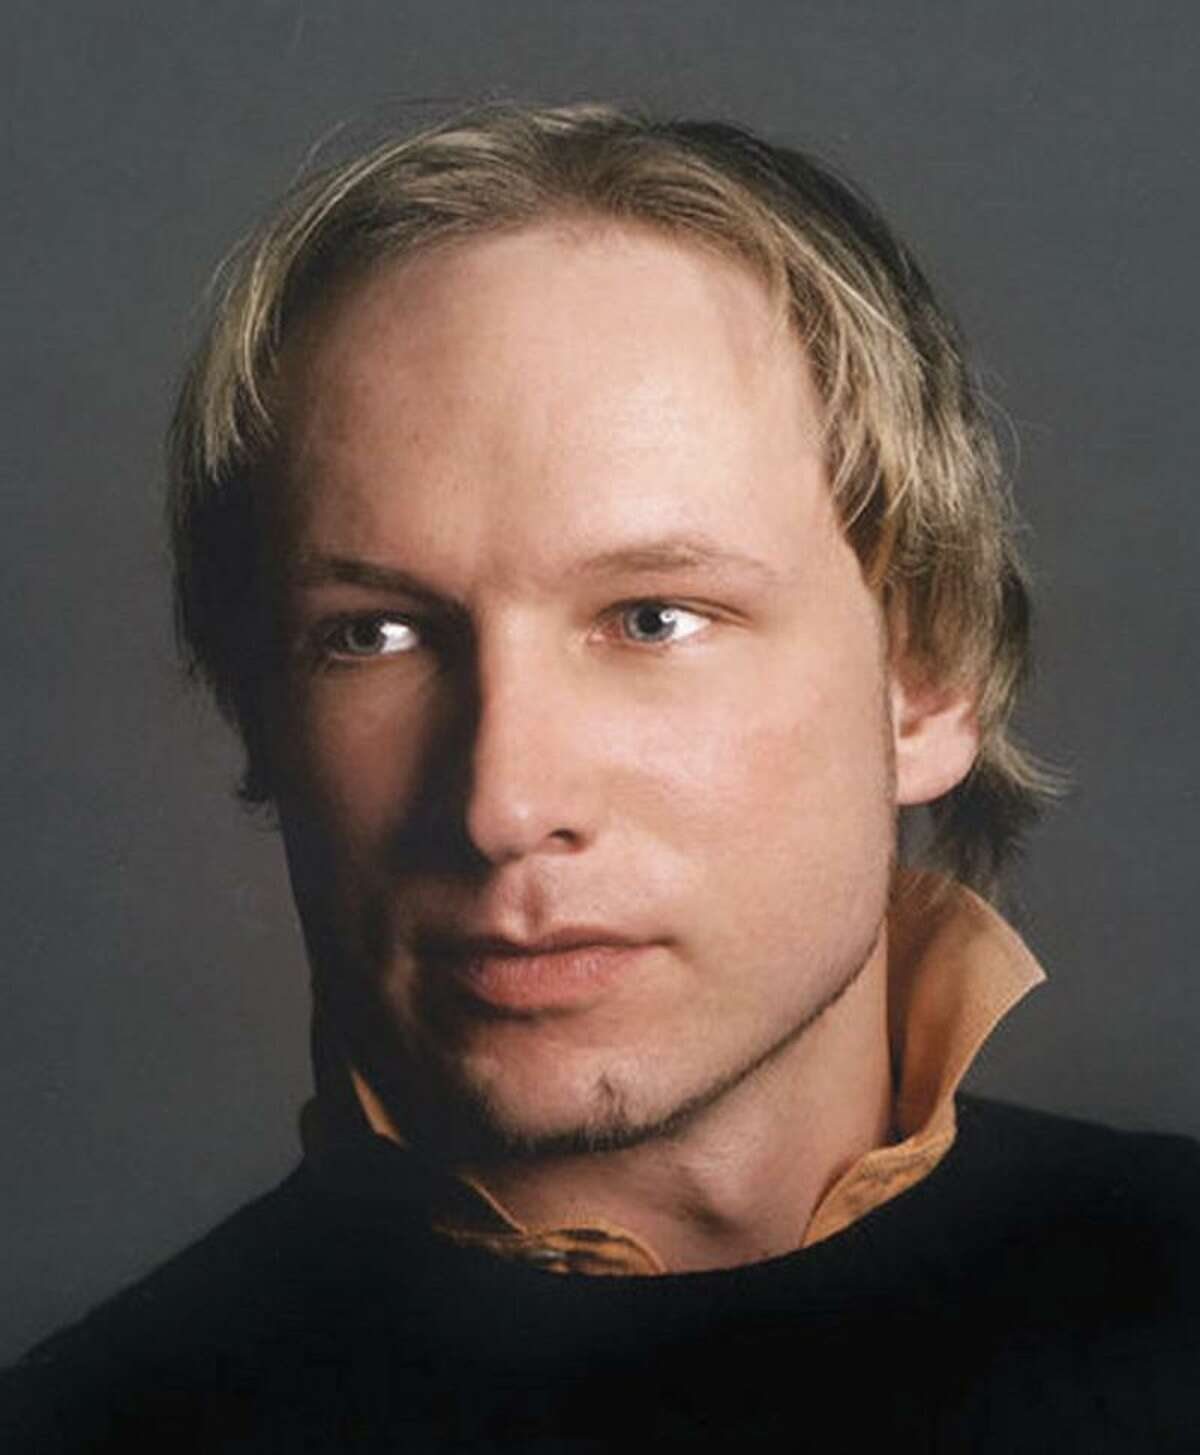 This is an undated image obtained from the Twitter page of Anders Behring Breivik, who was arrested Friday in connection to the twin attacks on a youth camp and a government building in Oslo, Norway. Associated Press